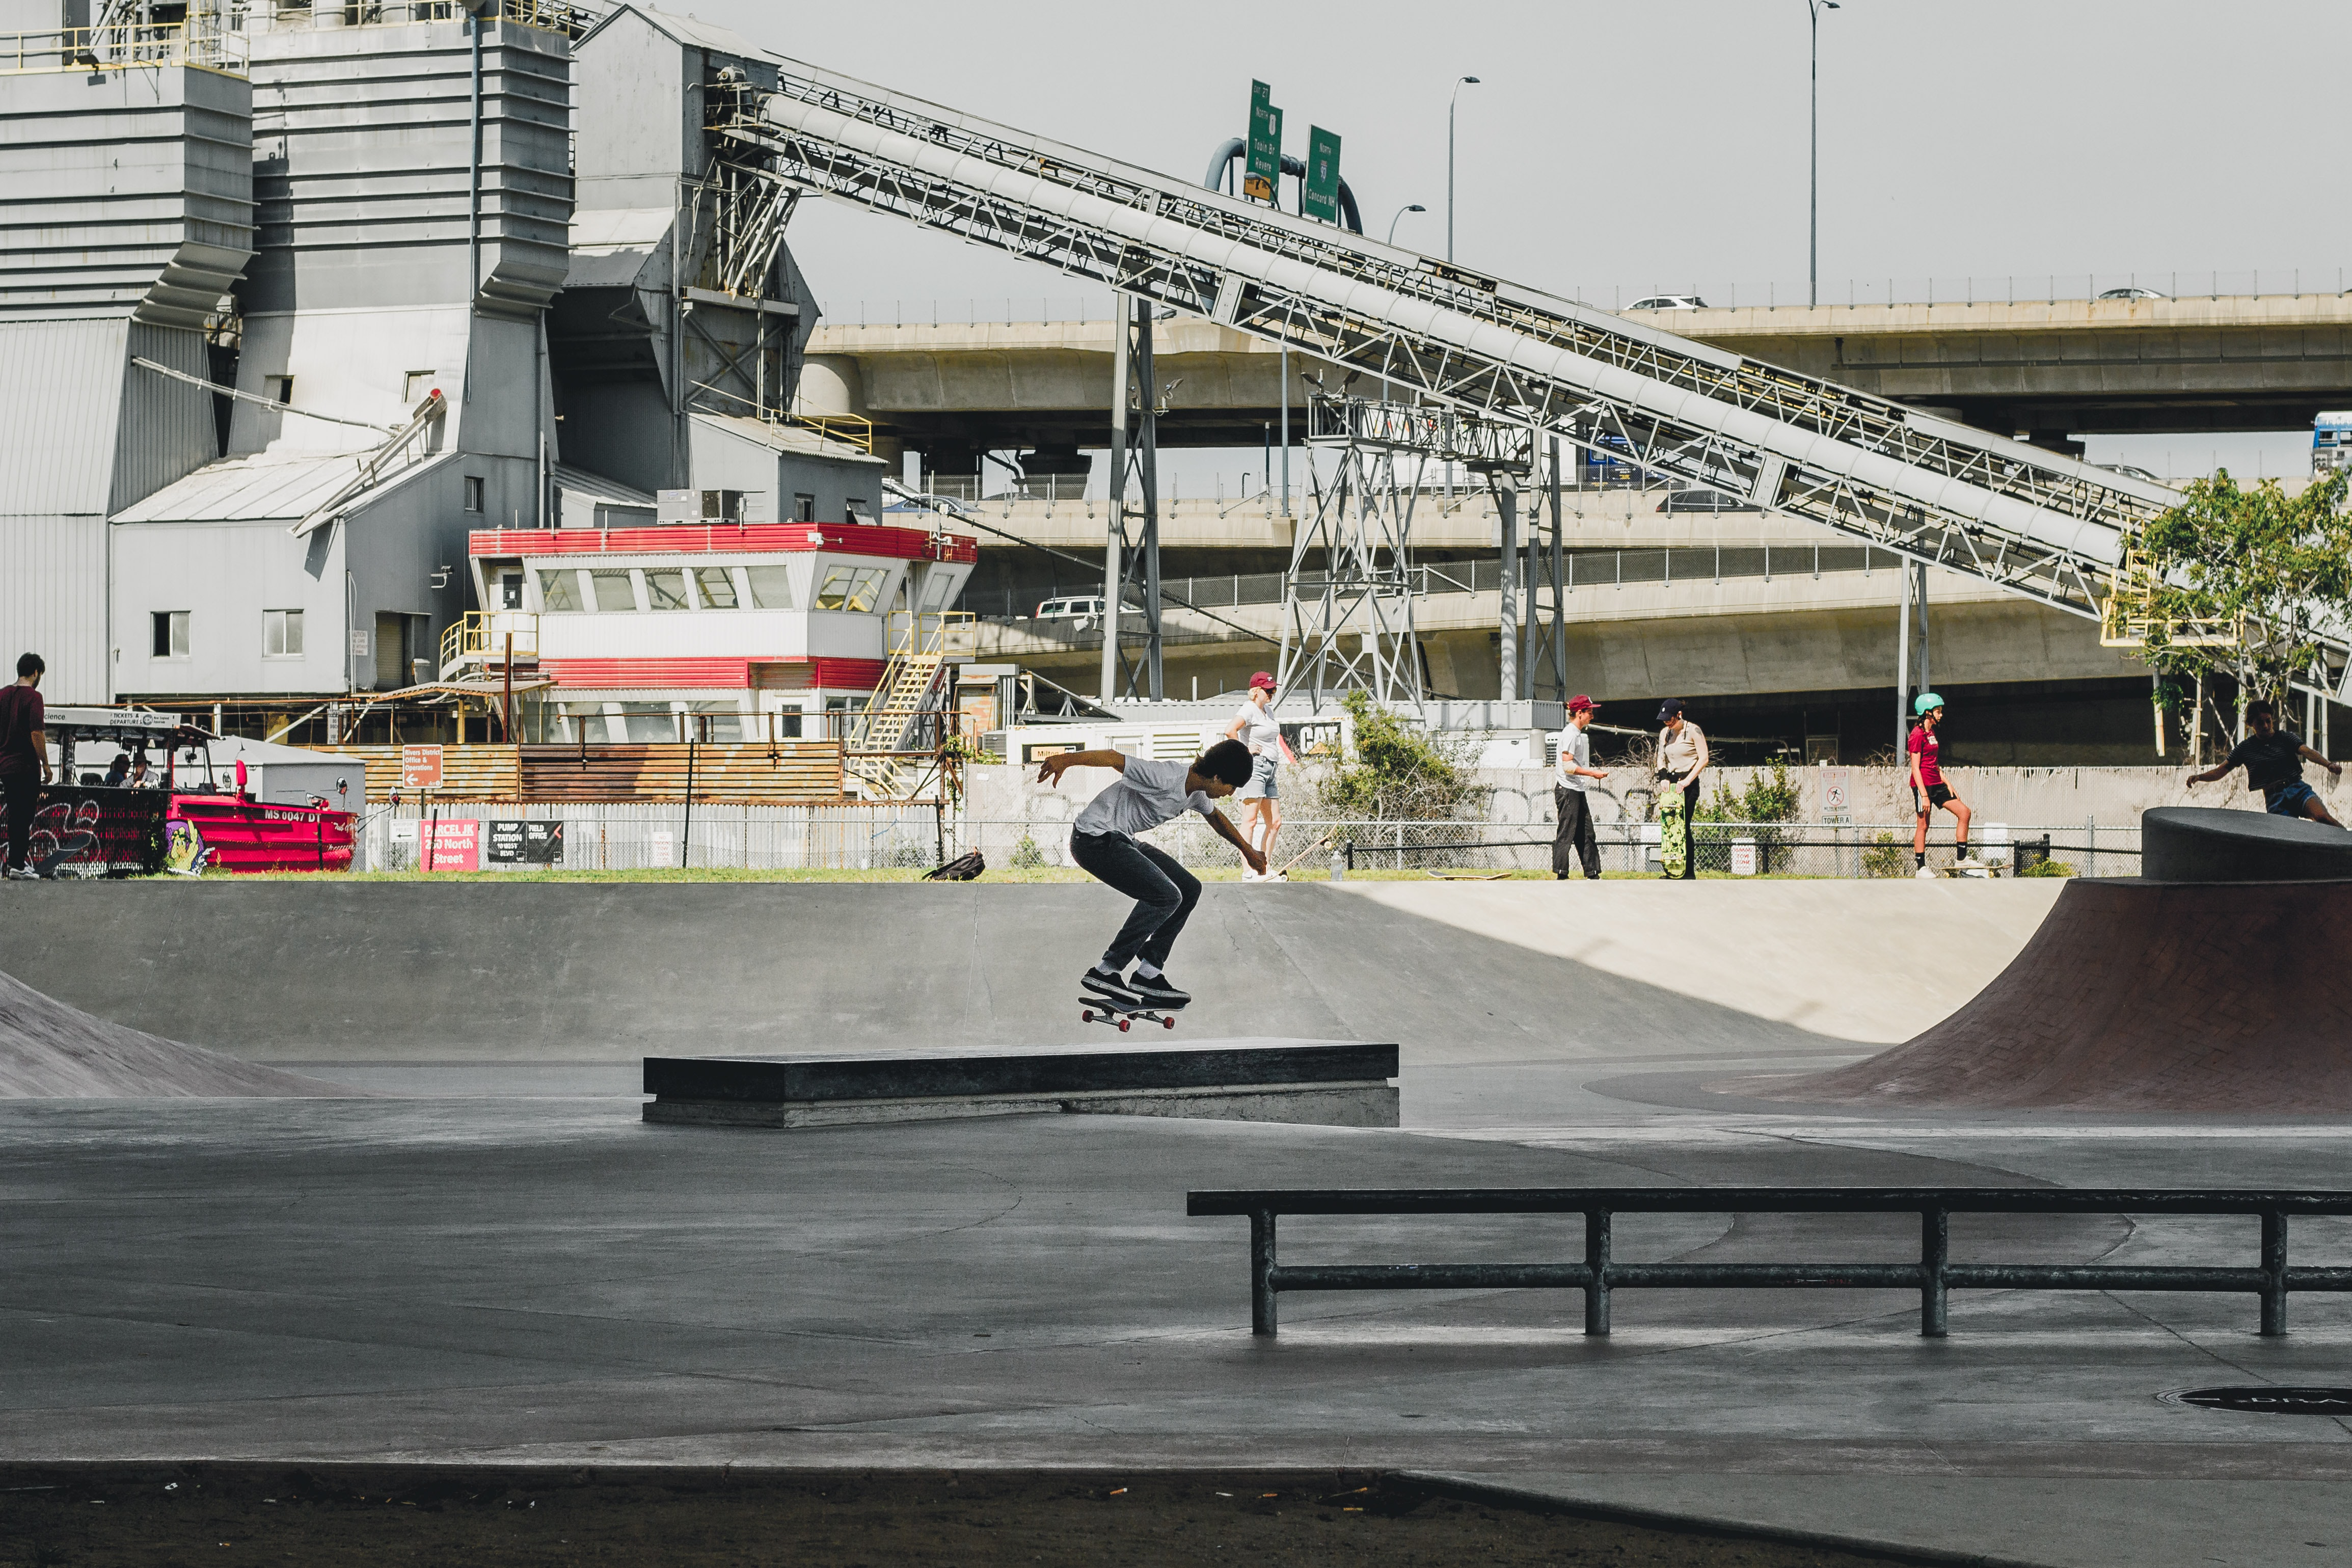 man skateboarding on gray concrete ramp